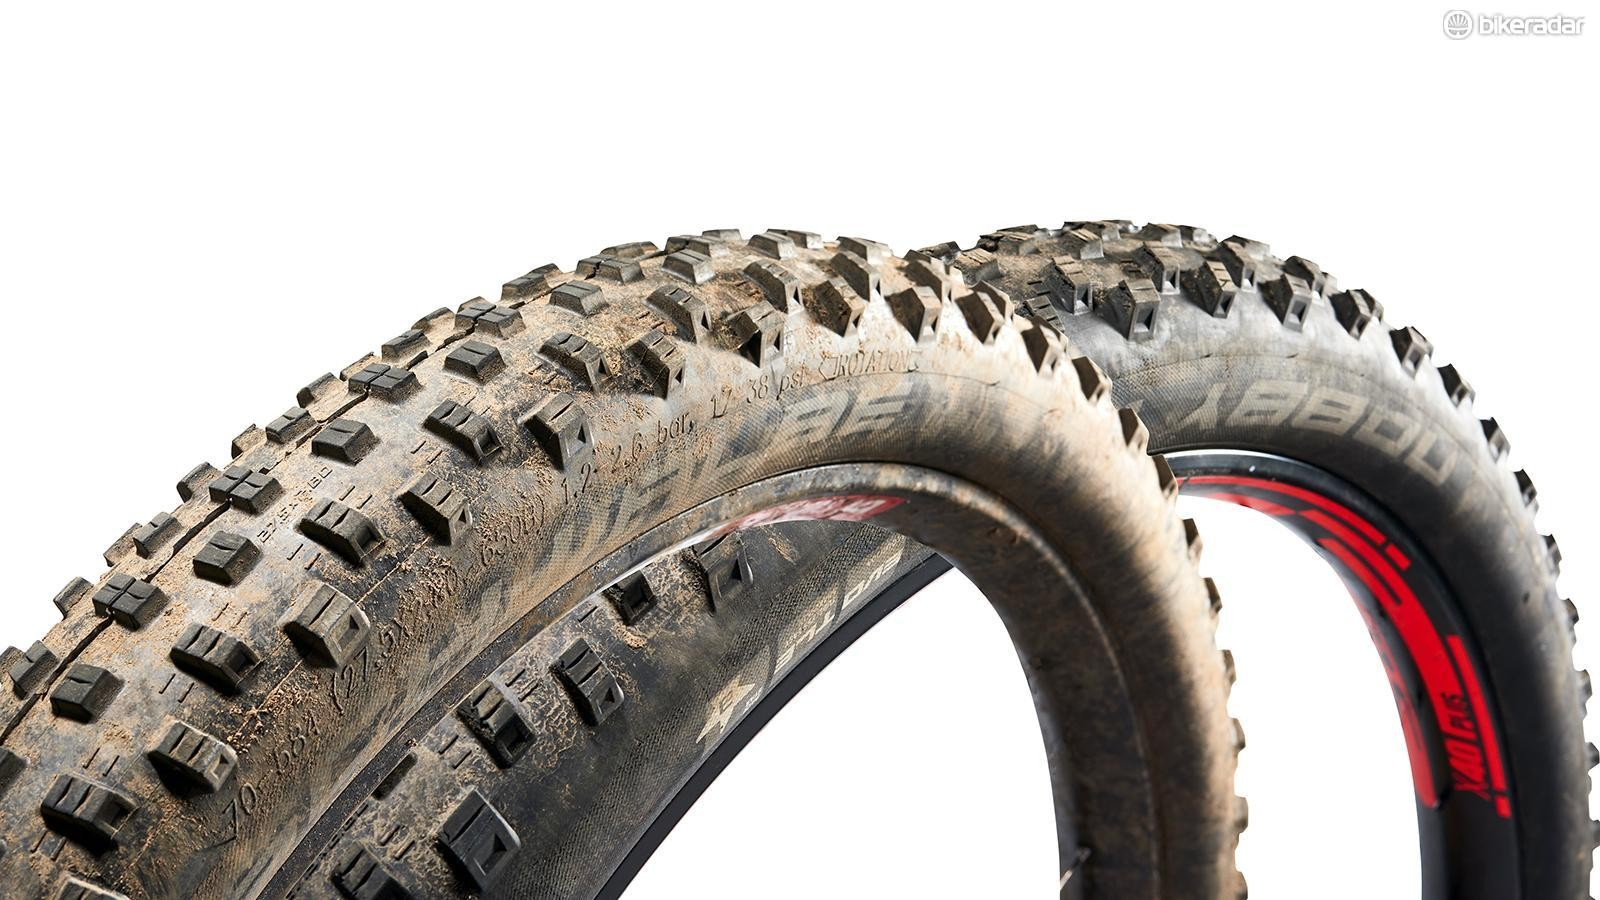 Once you move to a bigger tyre, reinforcing the casing comes with a proportionally greater weight penalty